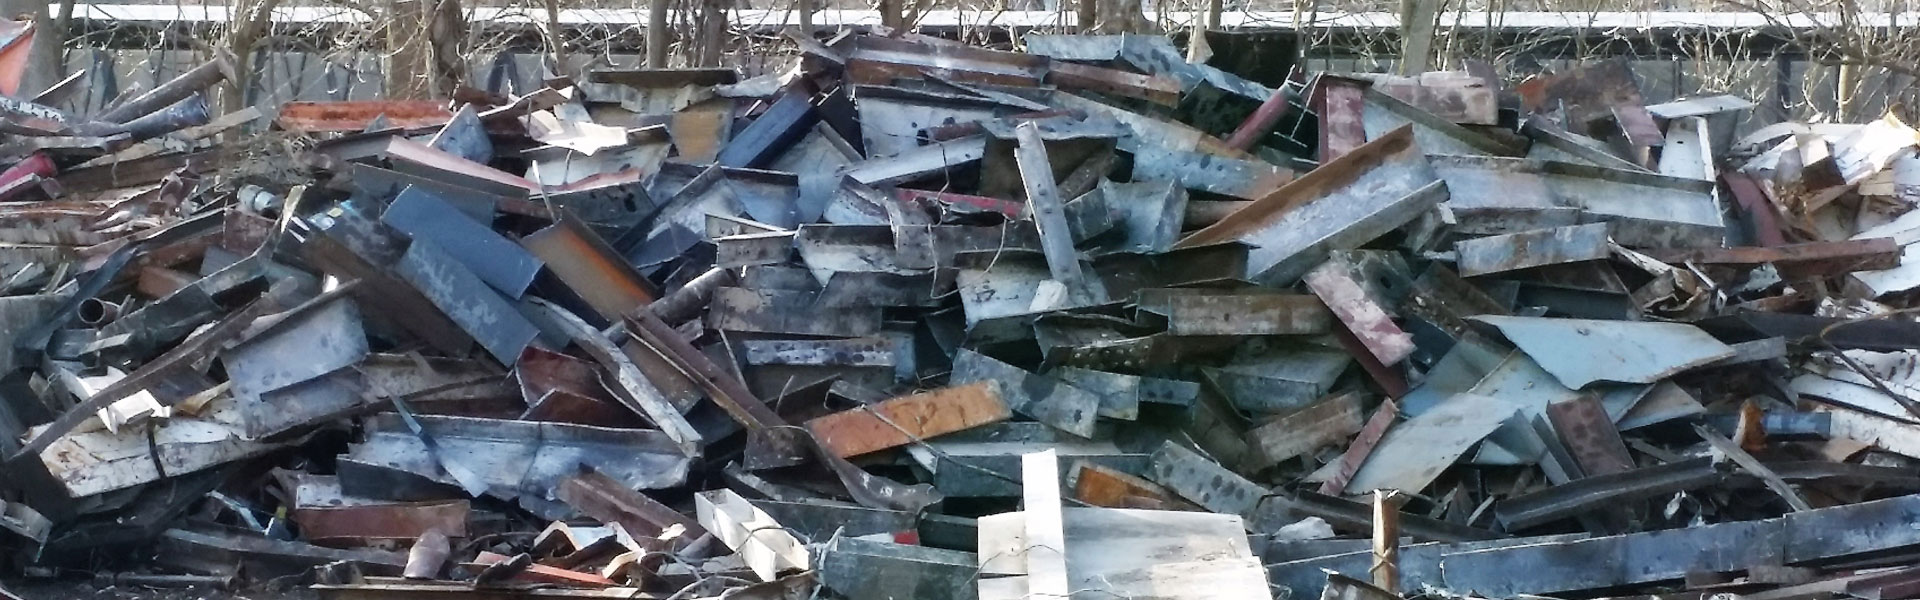 Modern Recycling Services Norristown Dumpster Rental Pa Norristown Scrap Metal Pennsylvania Norristown Pa Norristown Pennsylvania 19401 19404 19409 19415 45